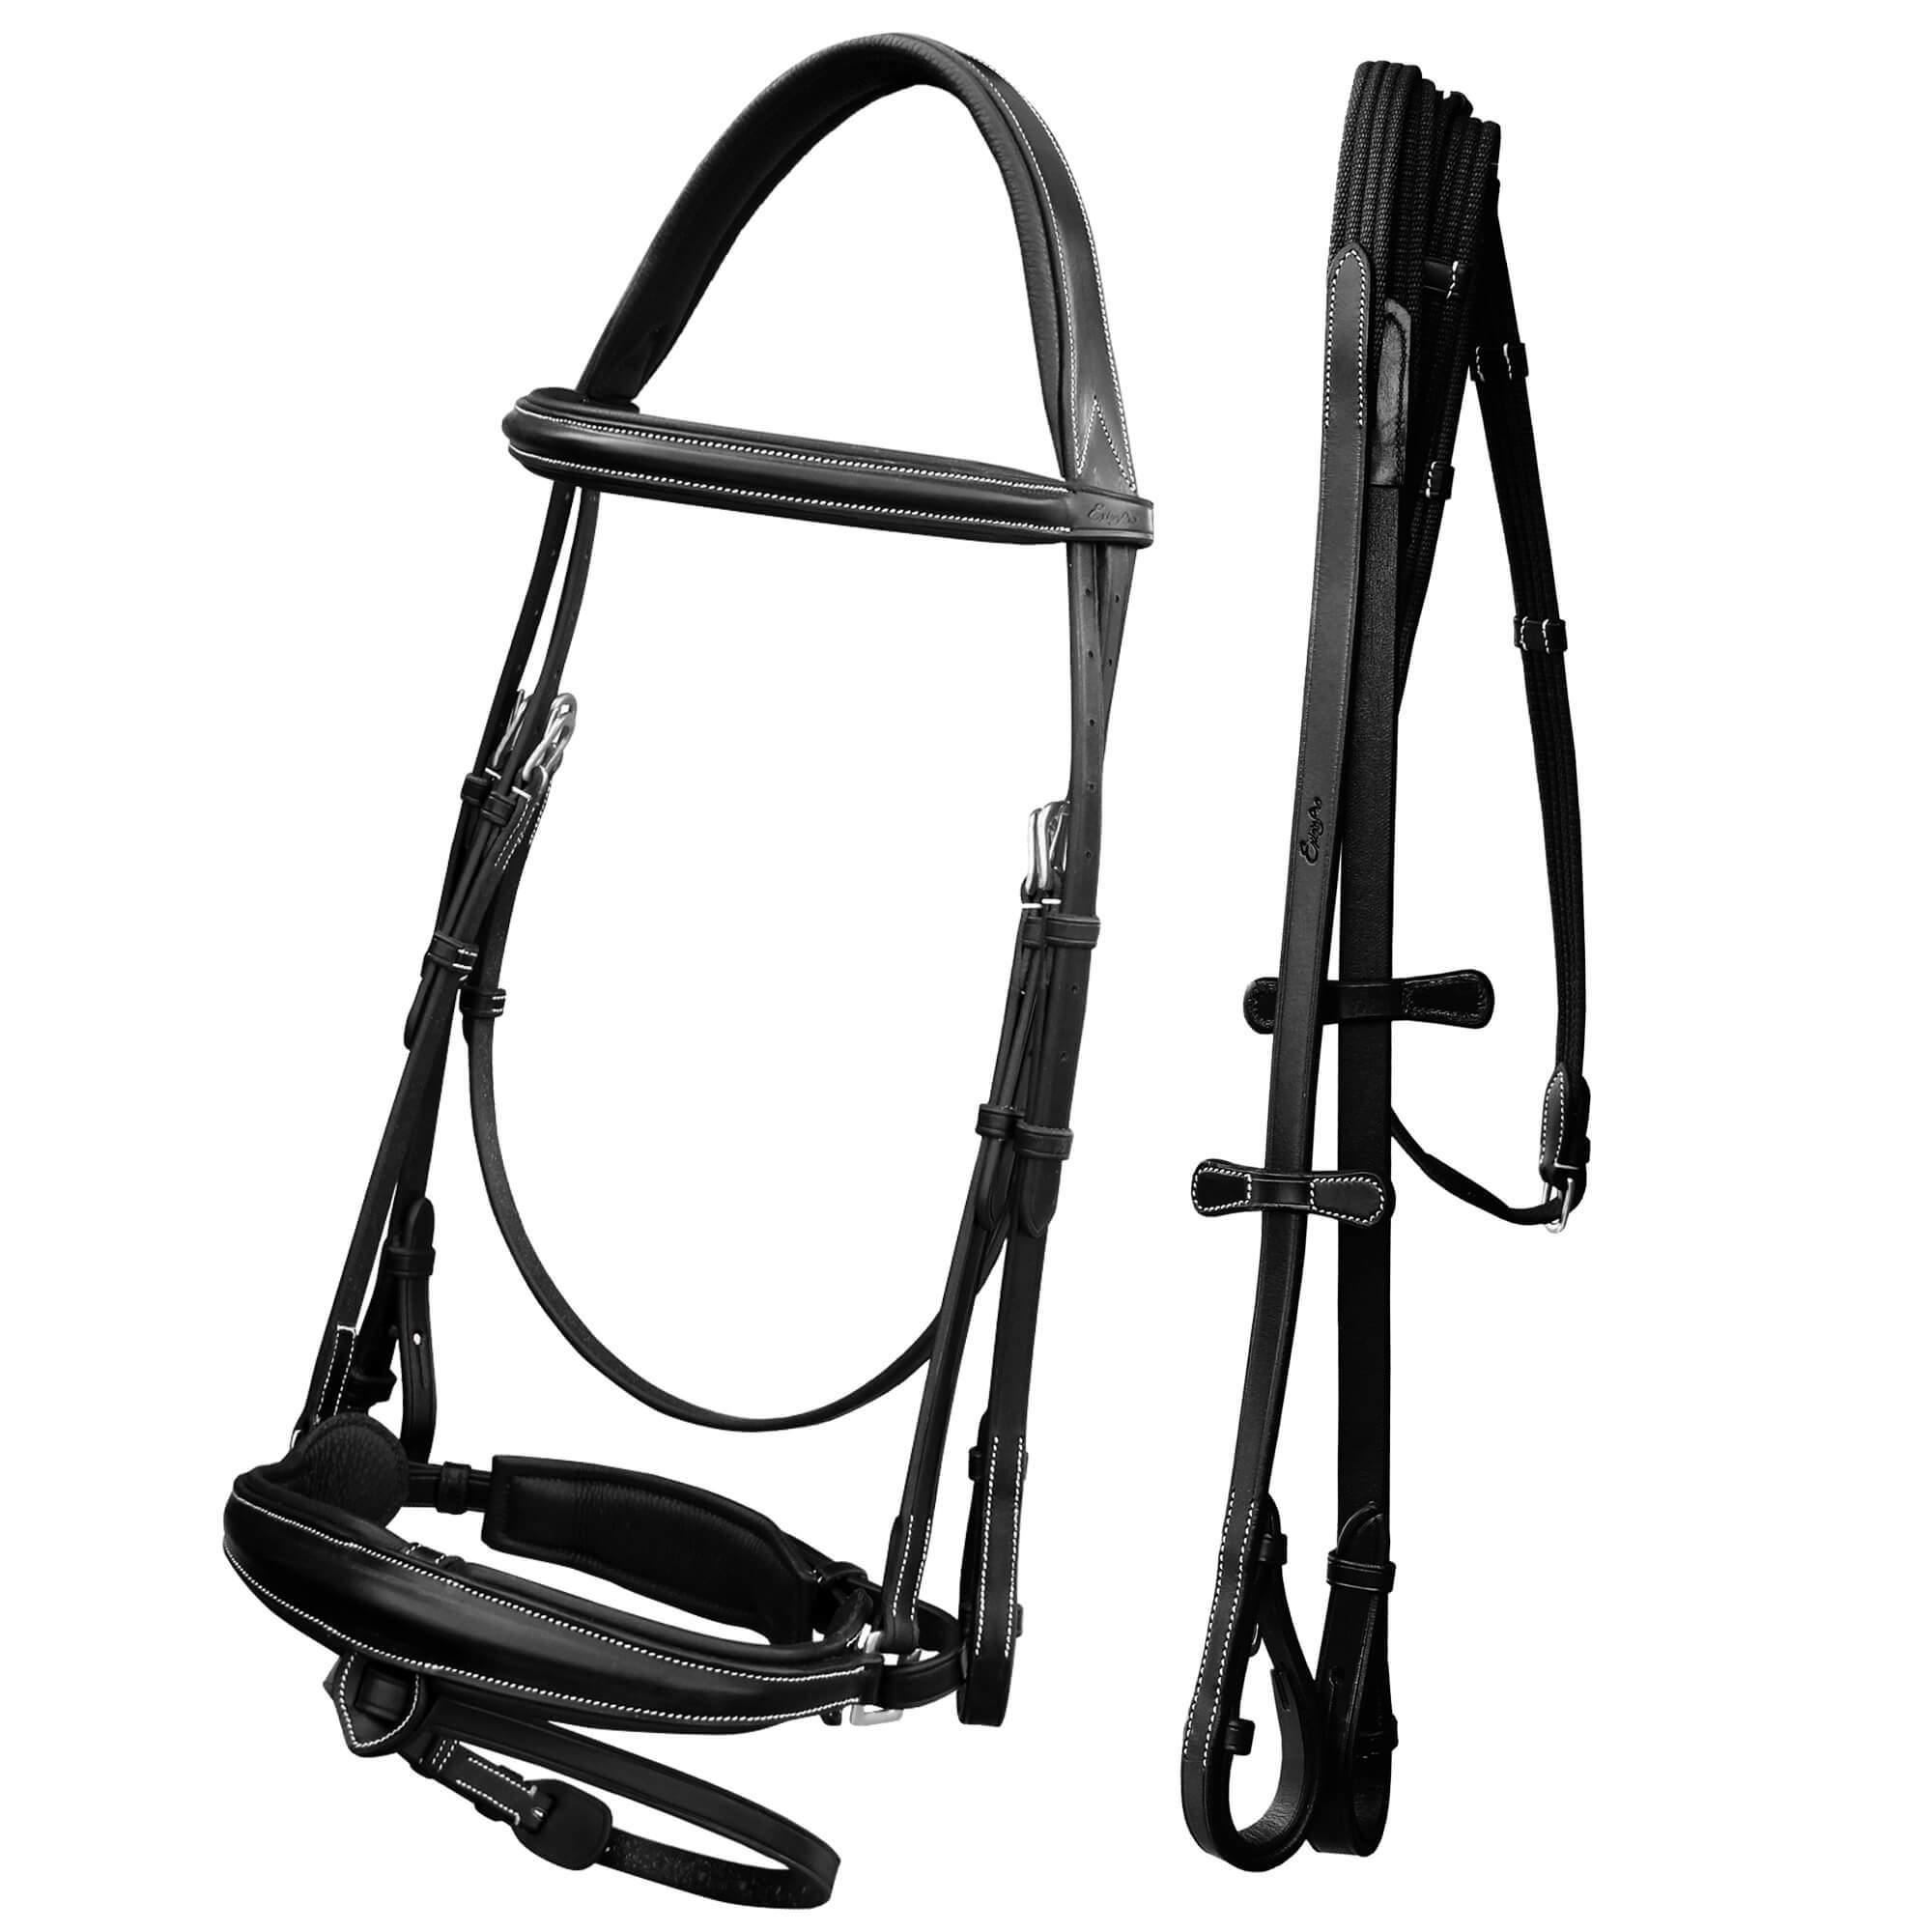 ExionPro Anatomical Dressage Bridle With Detachable Flash & Leather Stopper Reins-Bridles & Reins